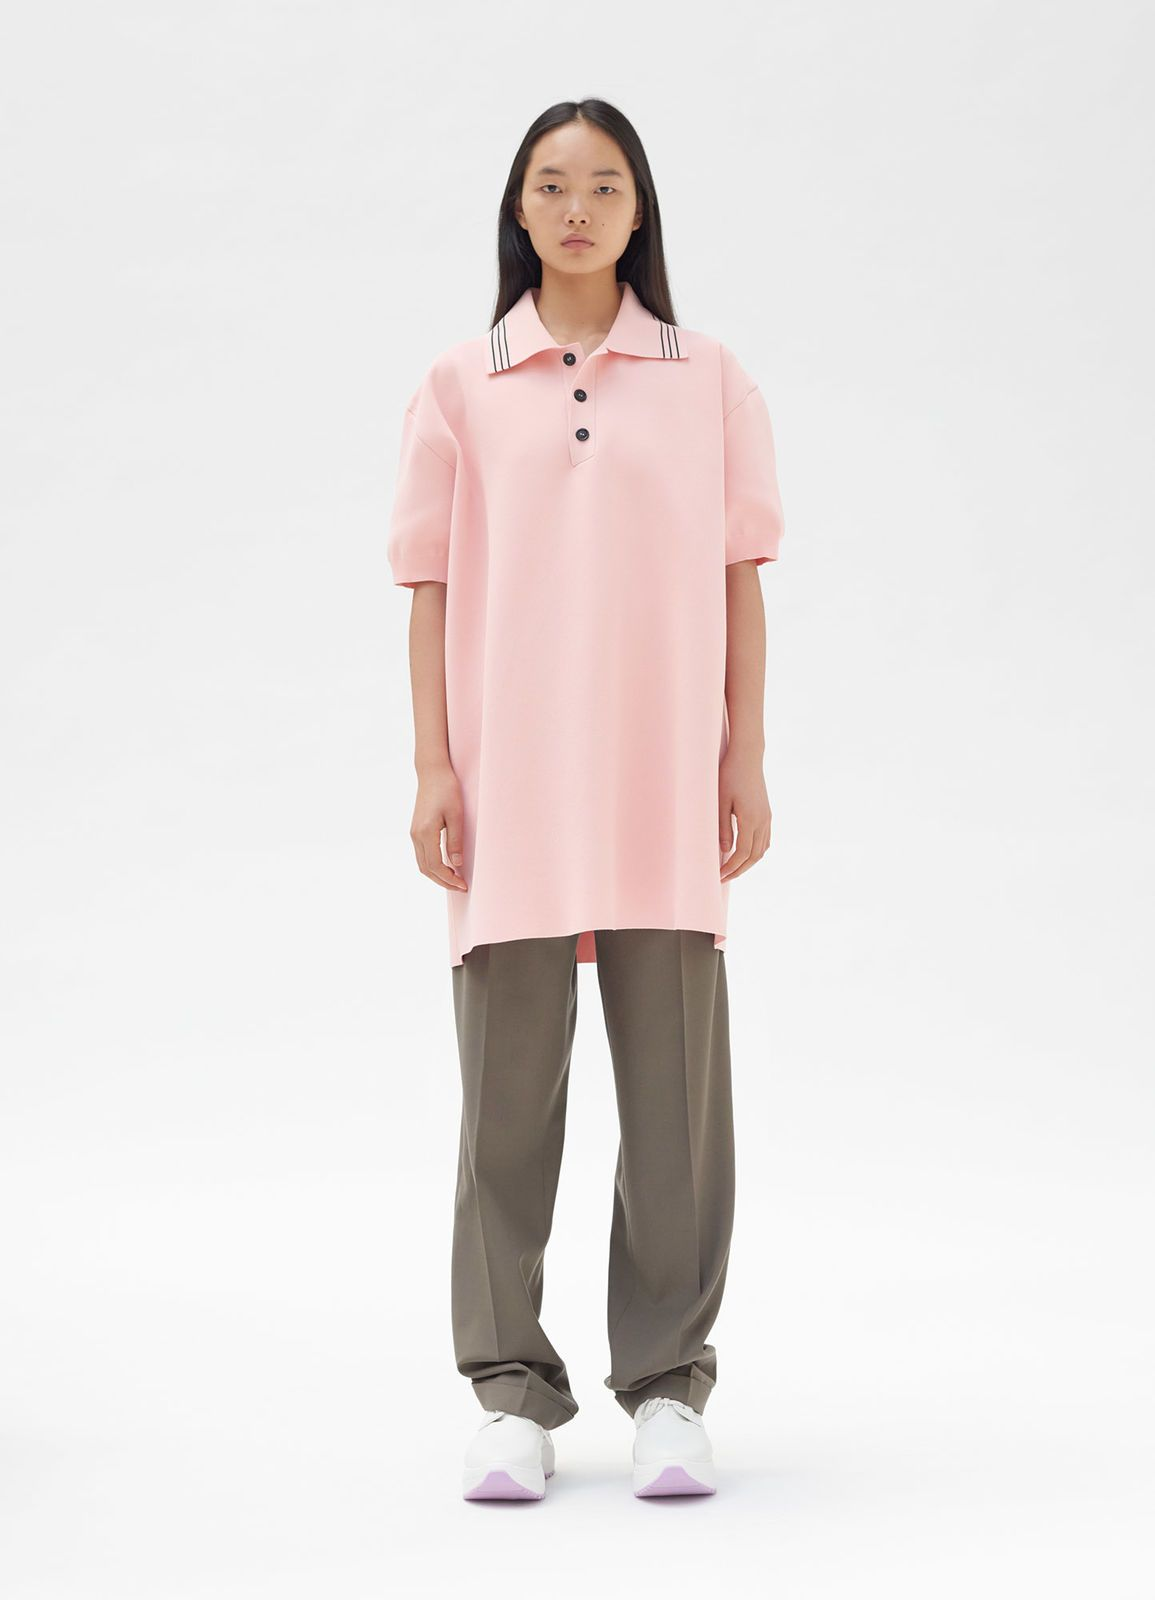 8bbea96a7d330 Browse and Buy the latest CELINE women's ready to wear collections online:  dresses, jackets, shirts, t-shirts, leather, knitwear, denim.